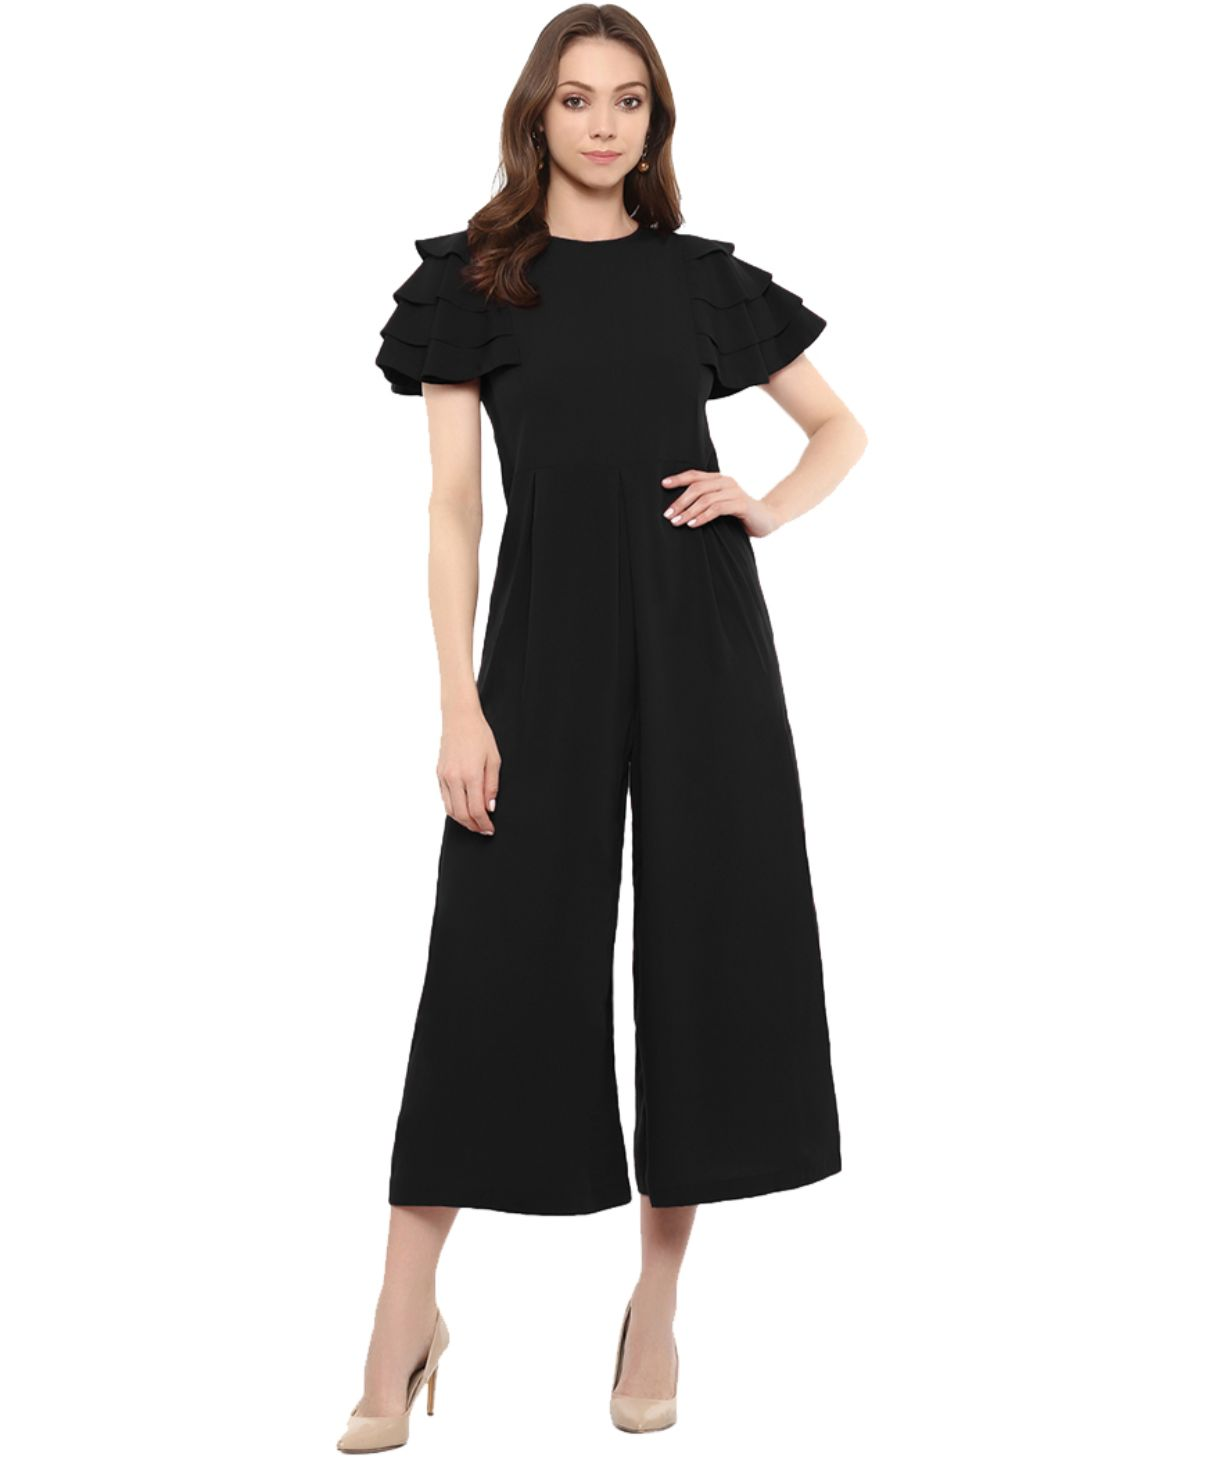 Uptownie Plus Black Solid Relaxed Fit Culotte Jumpsuit With Ruffled Sleeves